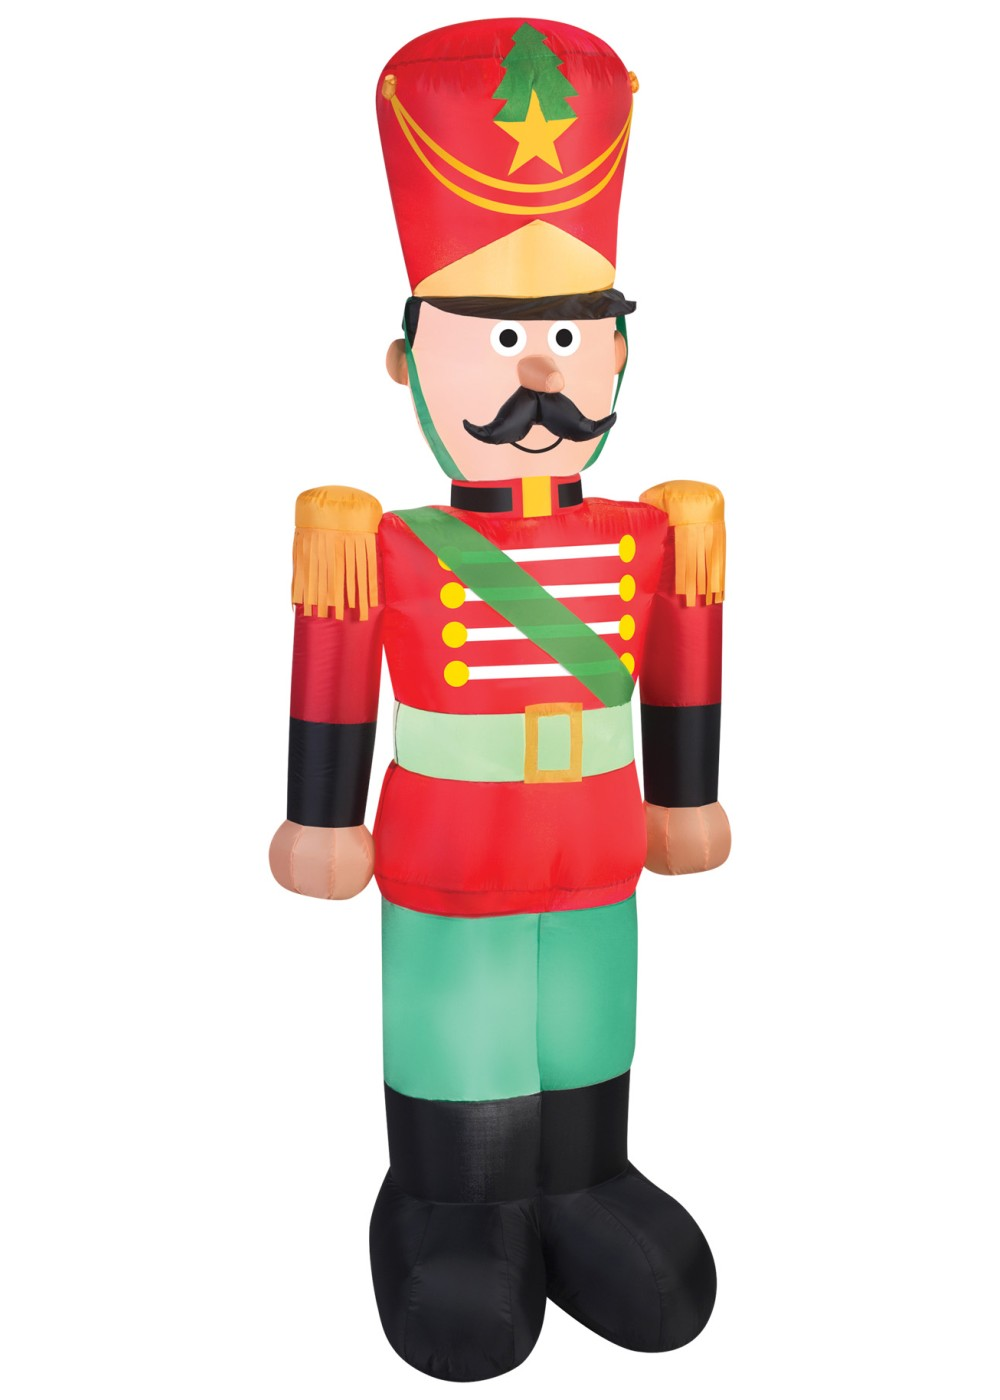 Airblown toy solider decoration decorations for Air blown decoration